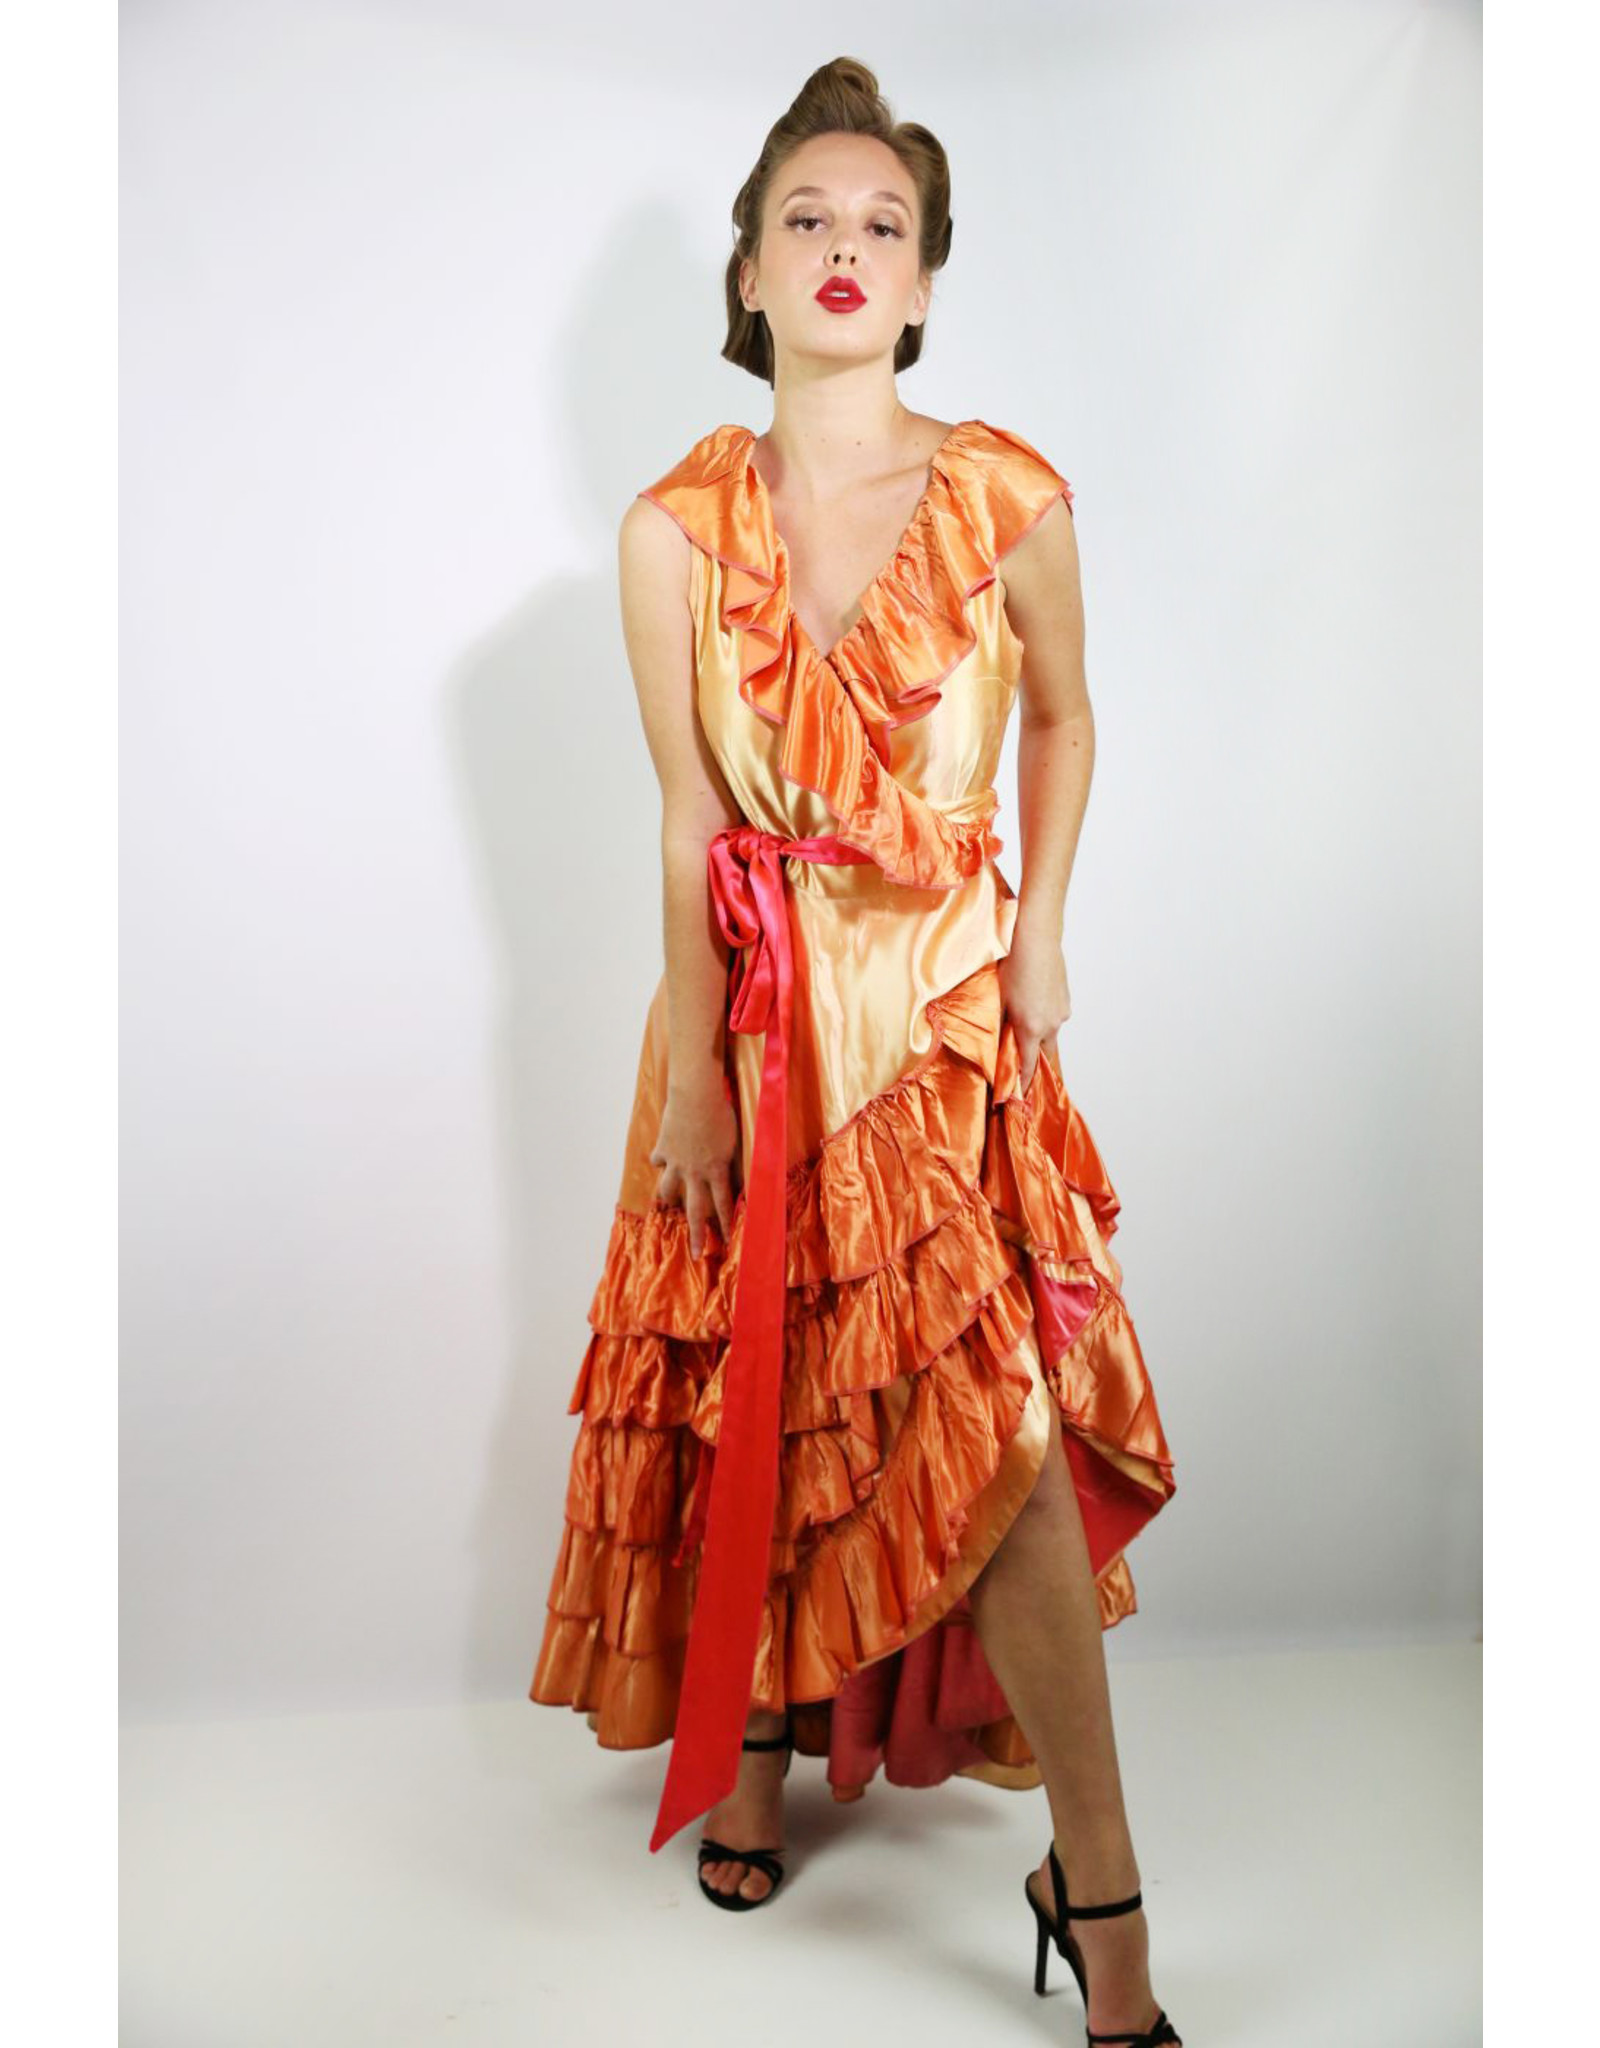 1940's Burlesque Wrap Dress Costume